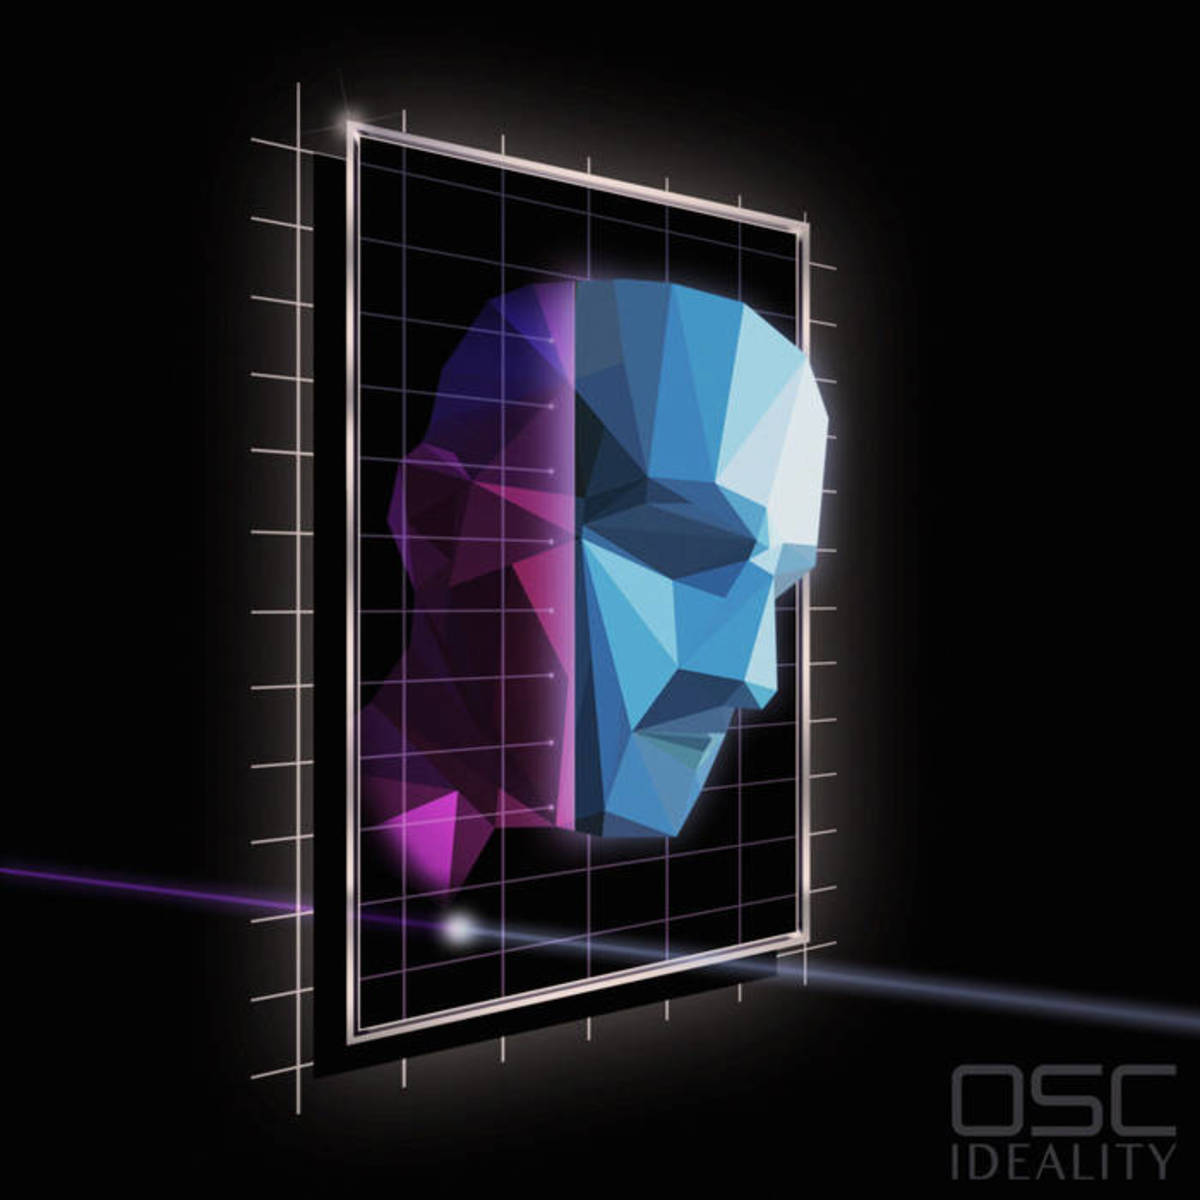 Synth Album Review: OSC,